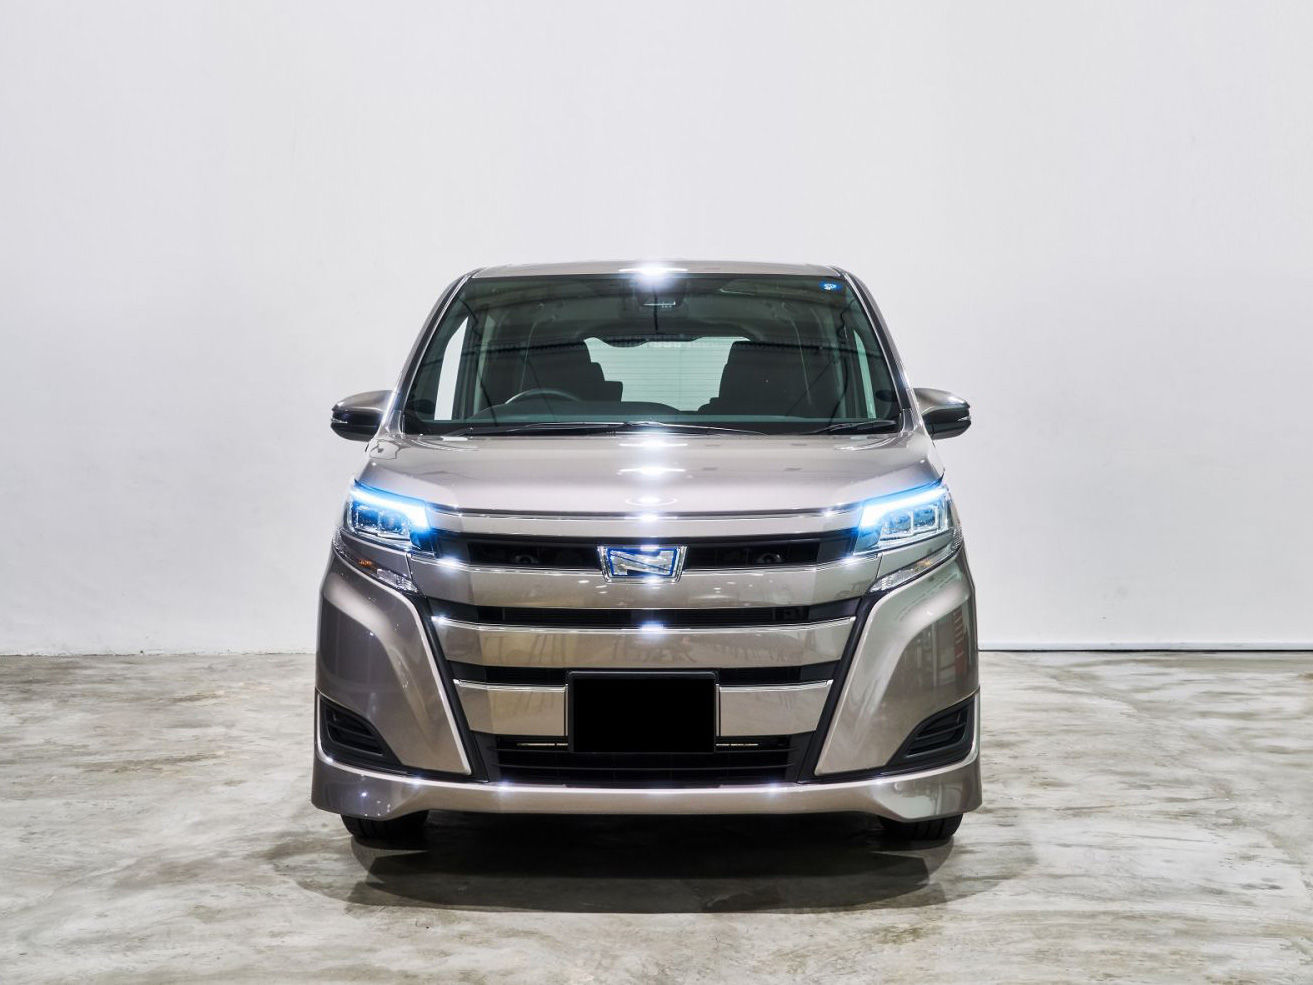 Toyota Noah Hybrid 1.8A Brand New 7 Seater (For Lease)